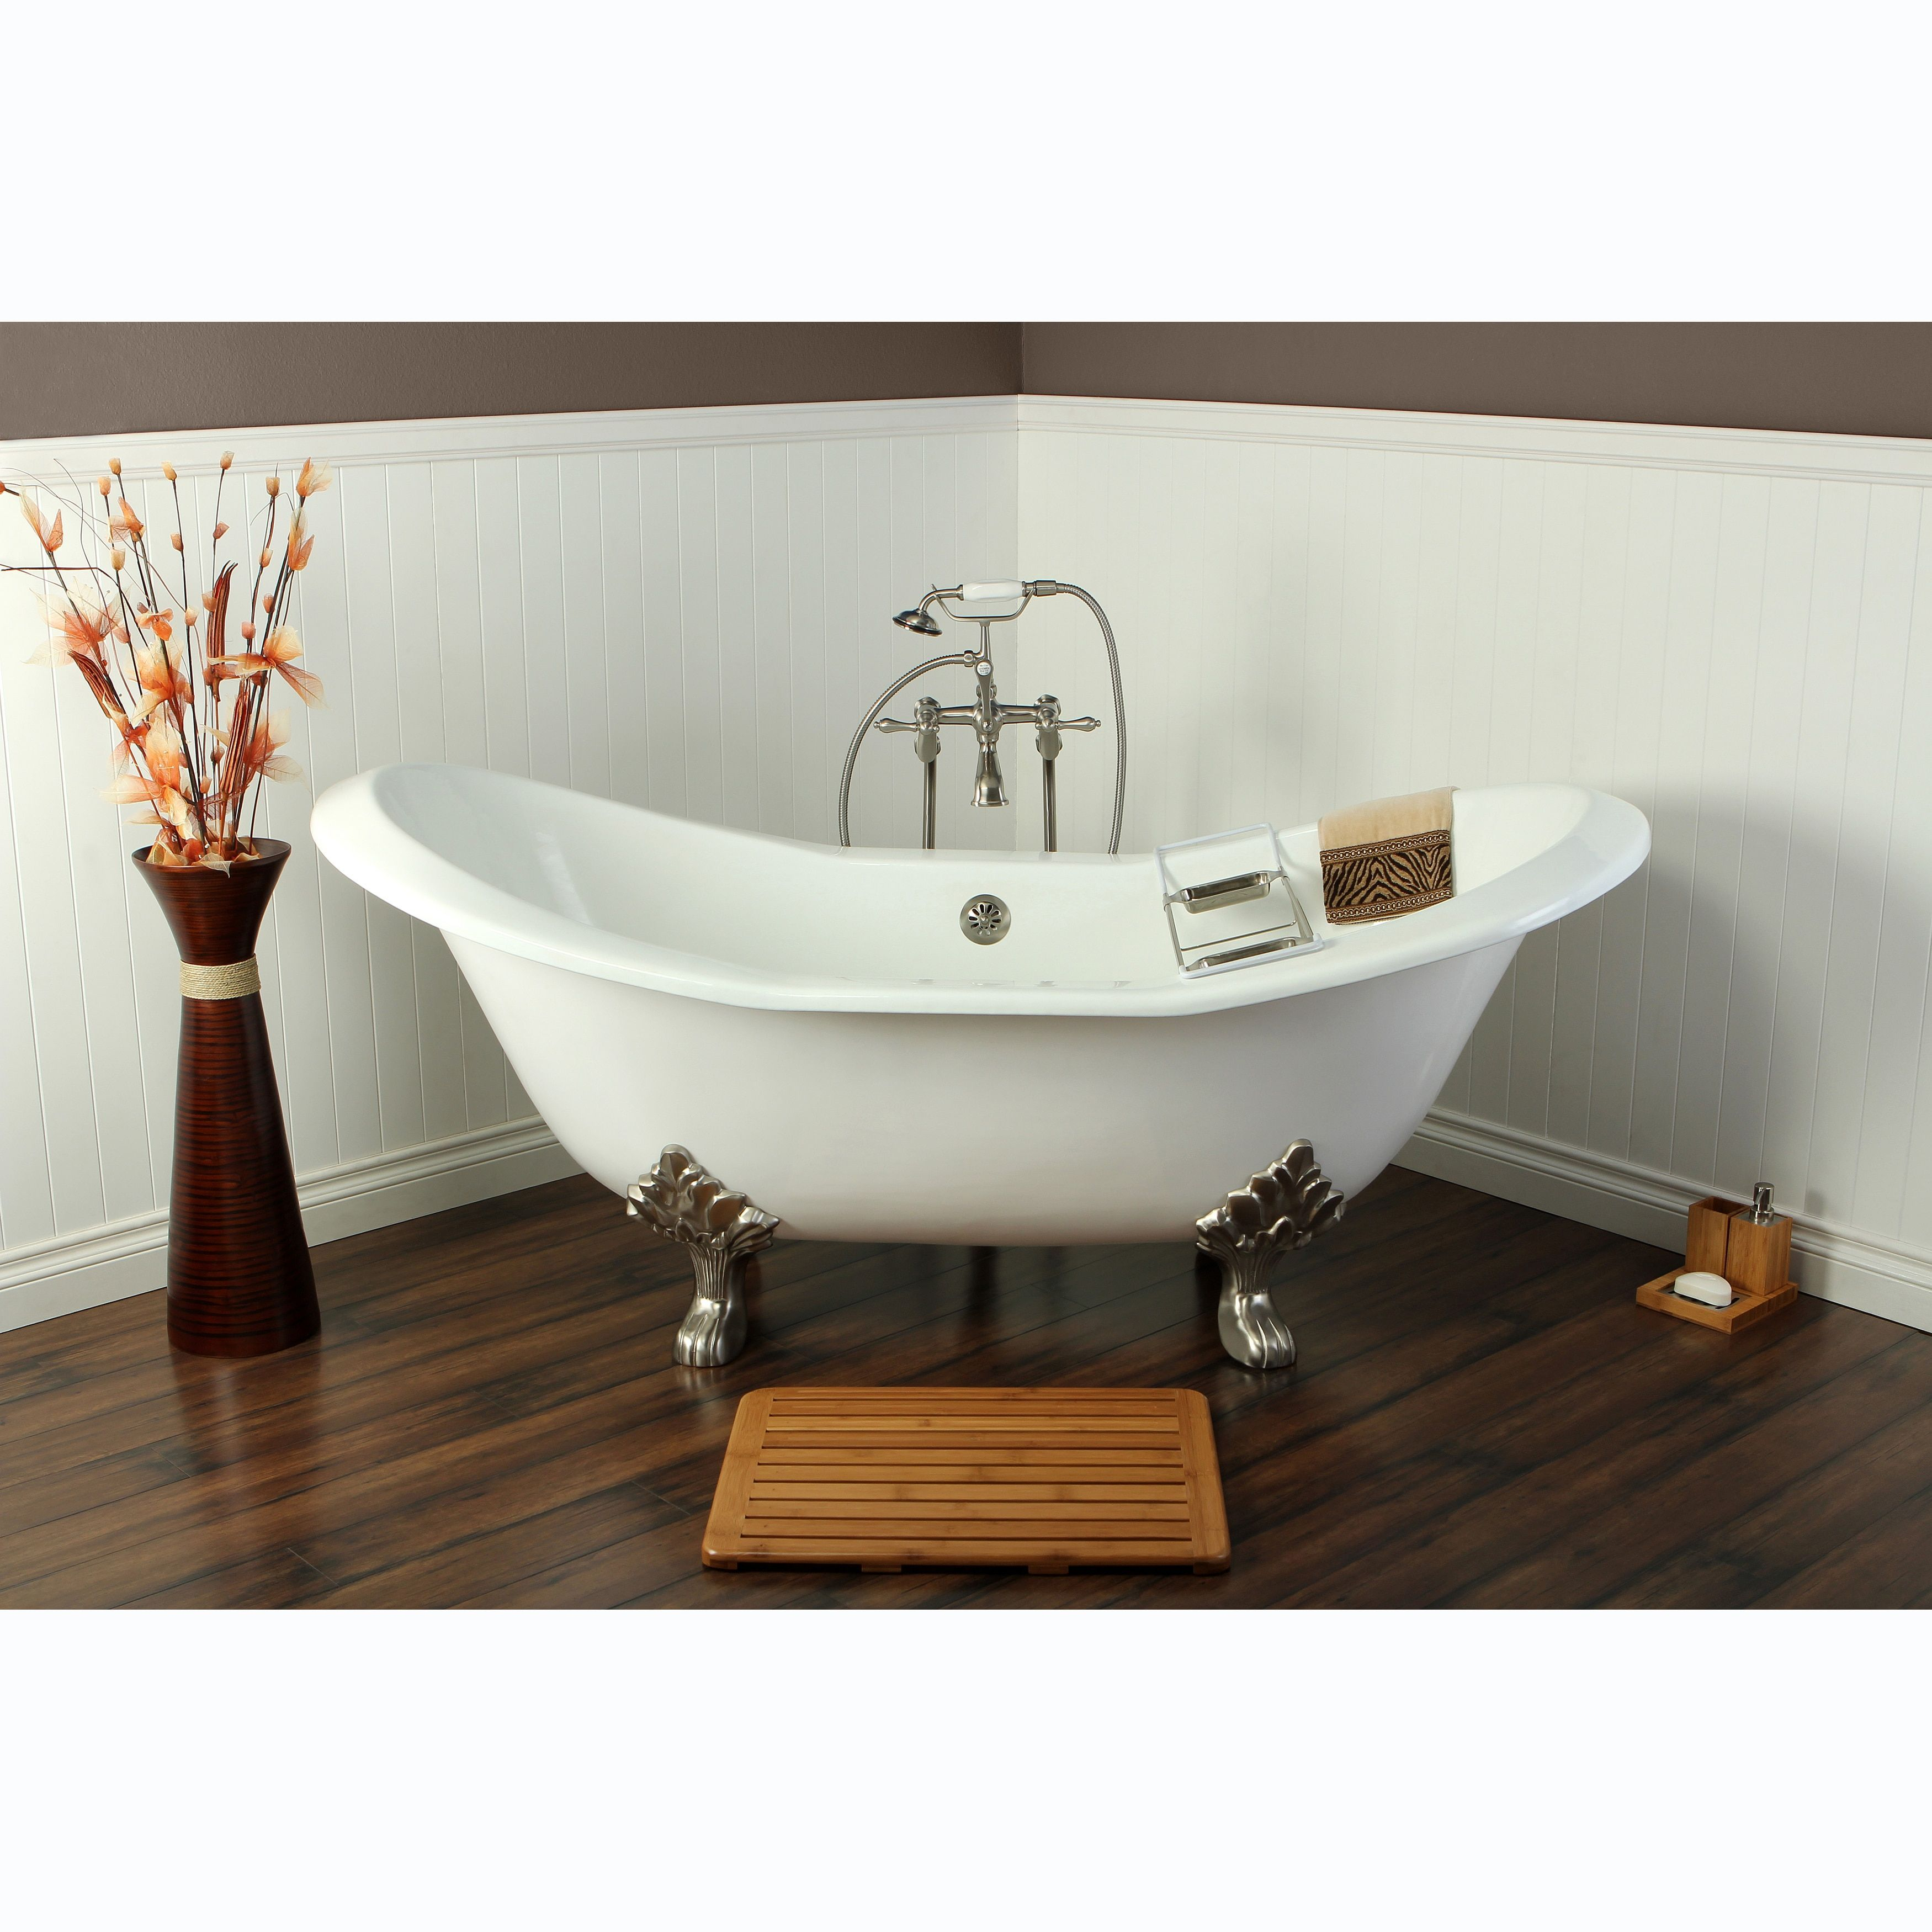 Double Slipper Cast Iron 72 Inch Clawfoot Bathtub White Satin